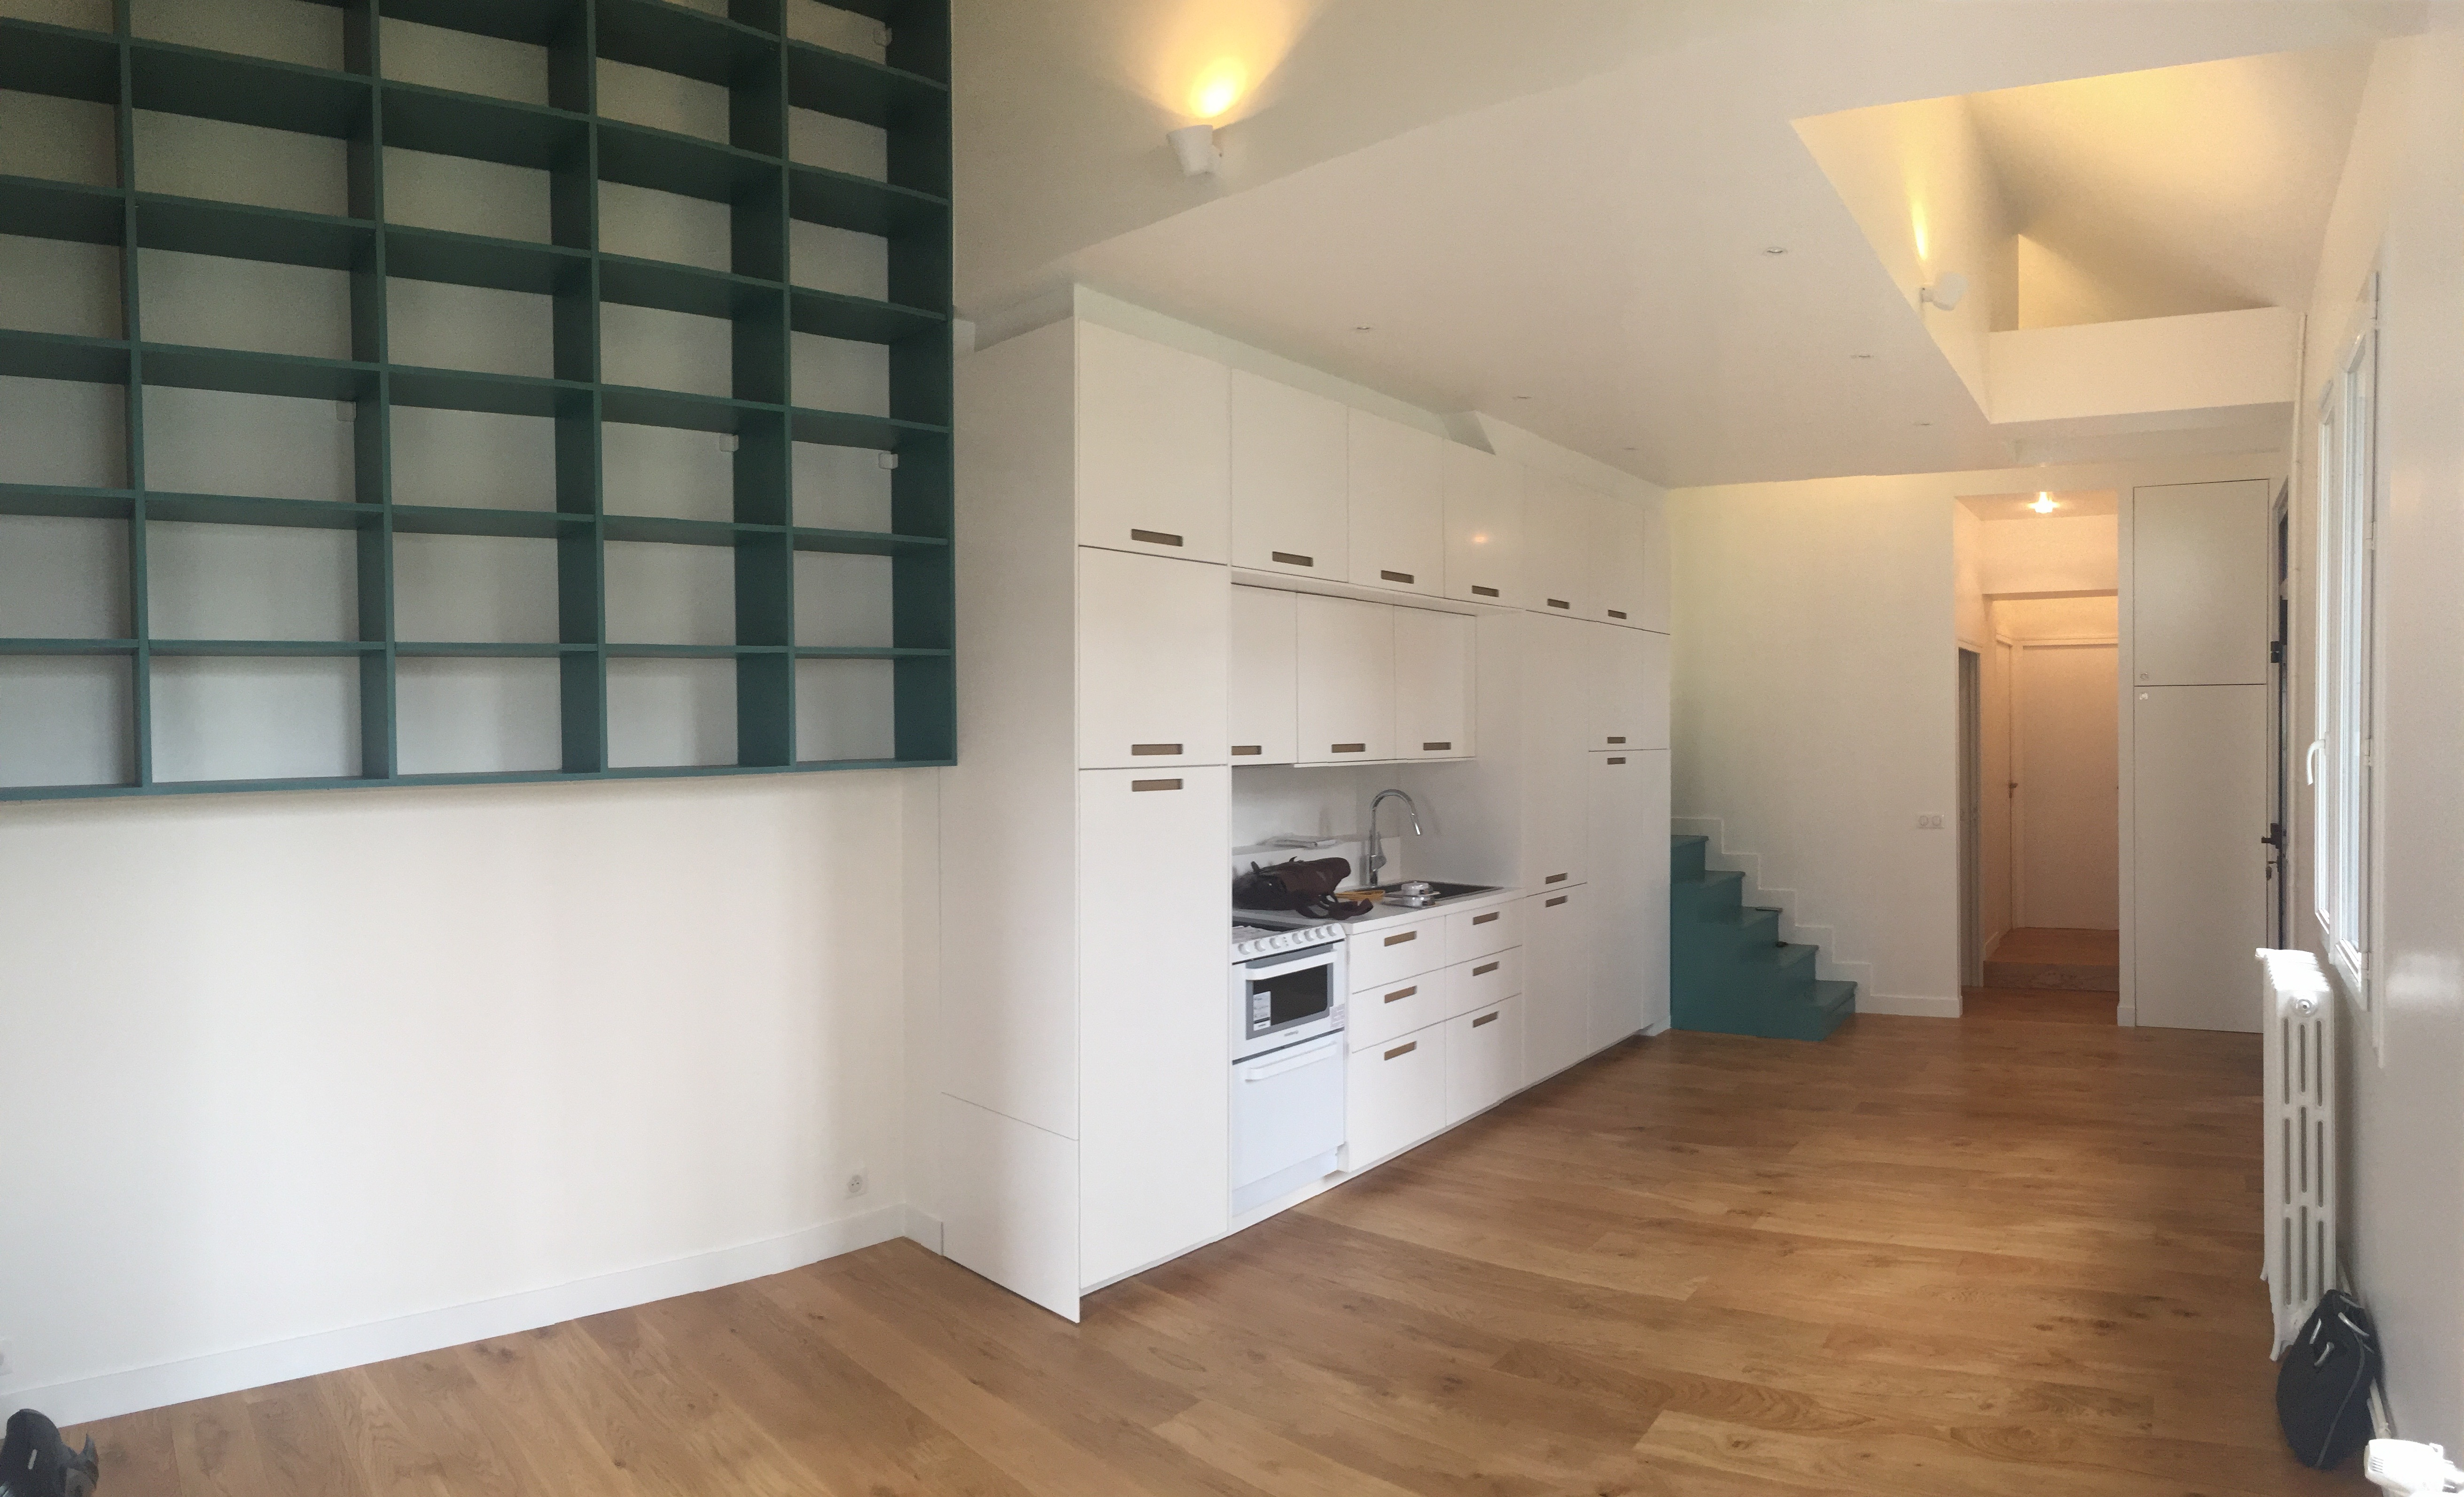 Fin de Chantier transformation d'un local 80m2